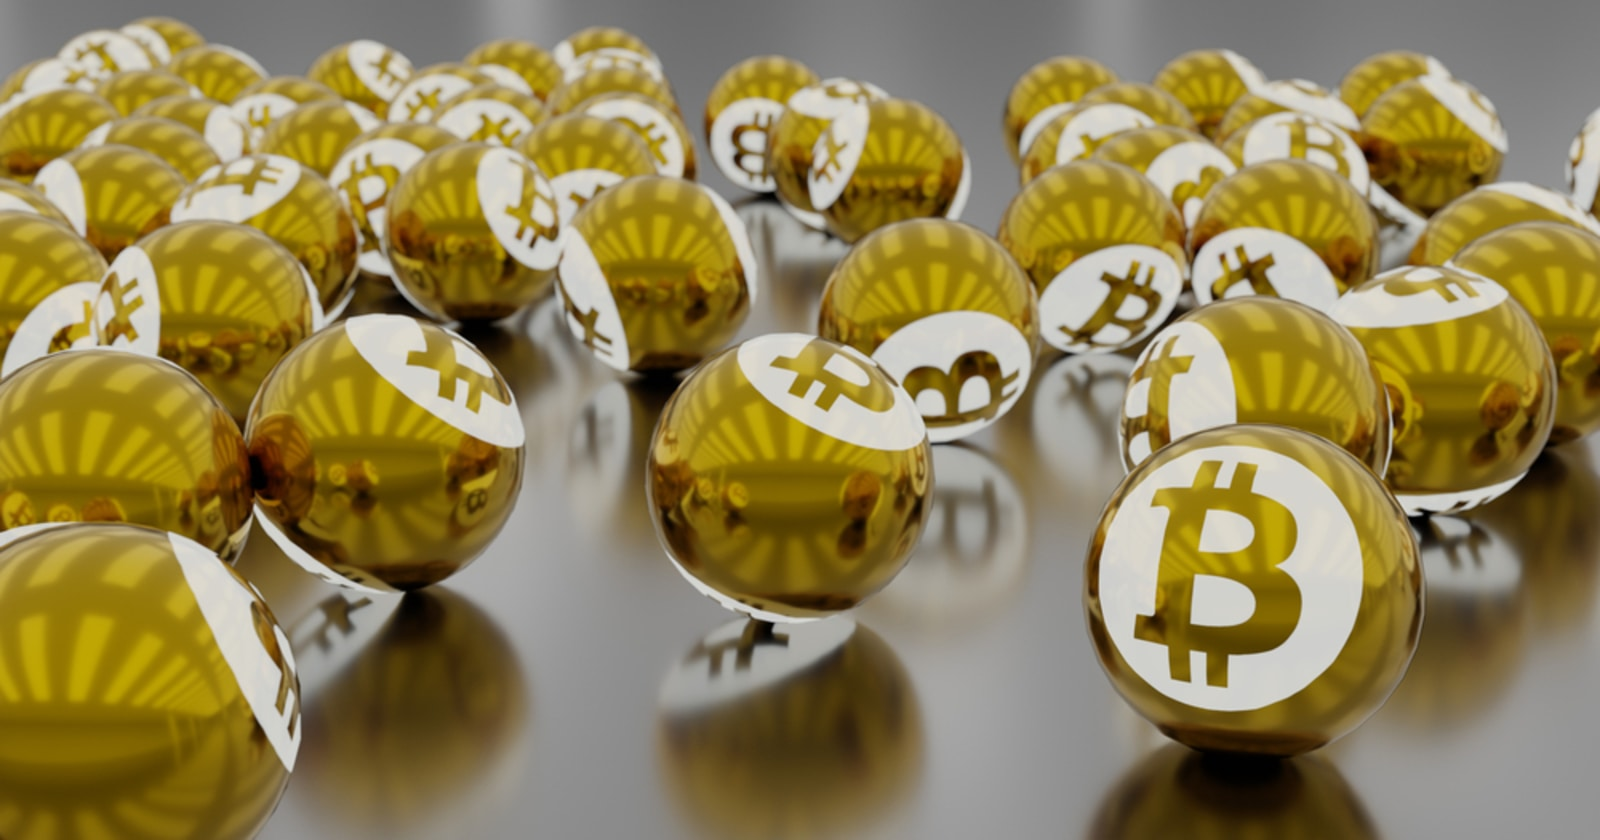 Bitcoin price to rally past past fundamentals